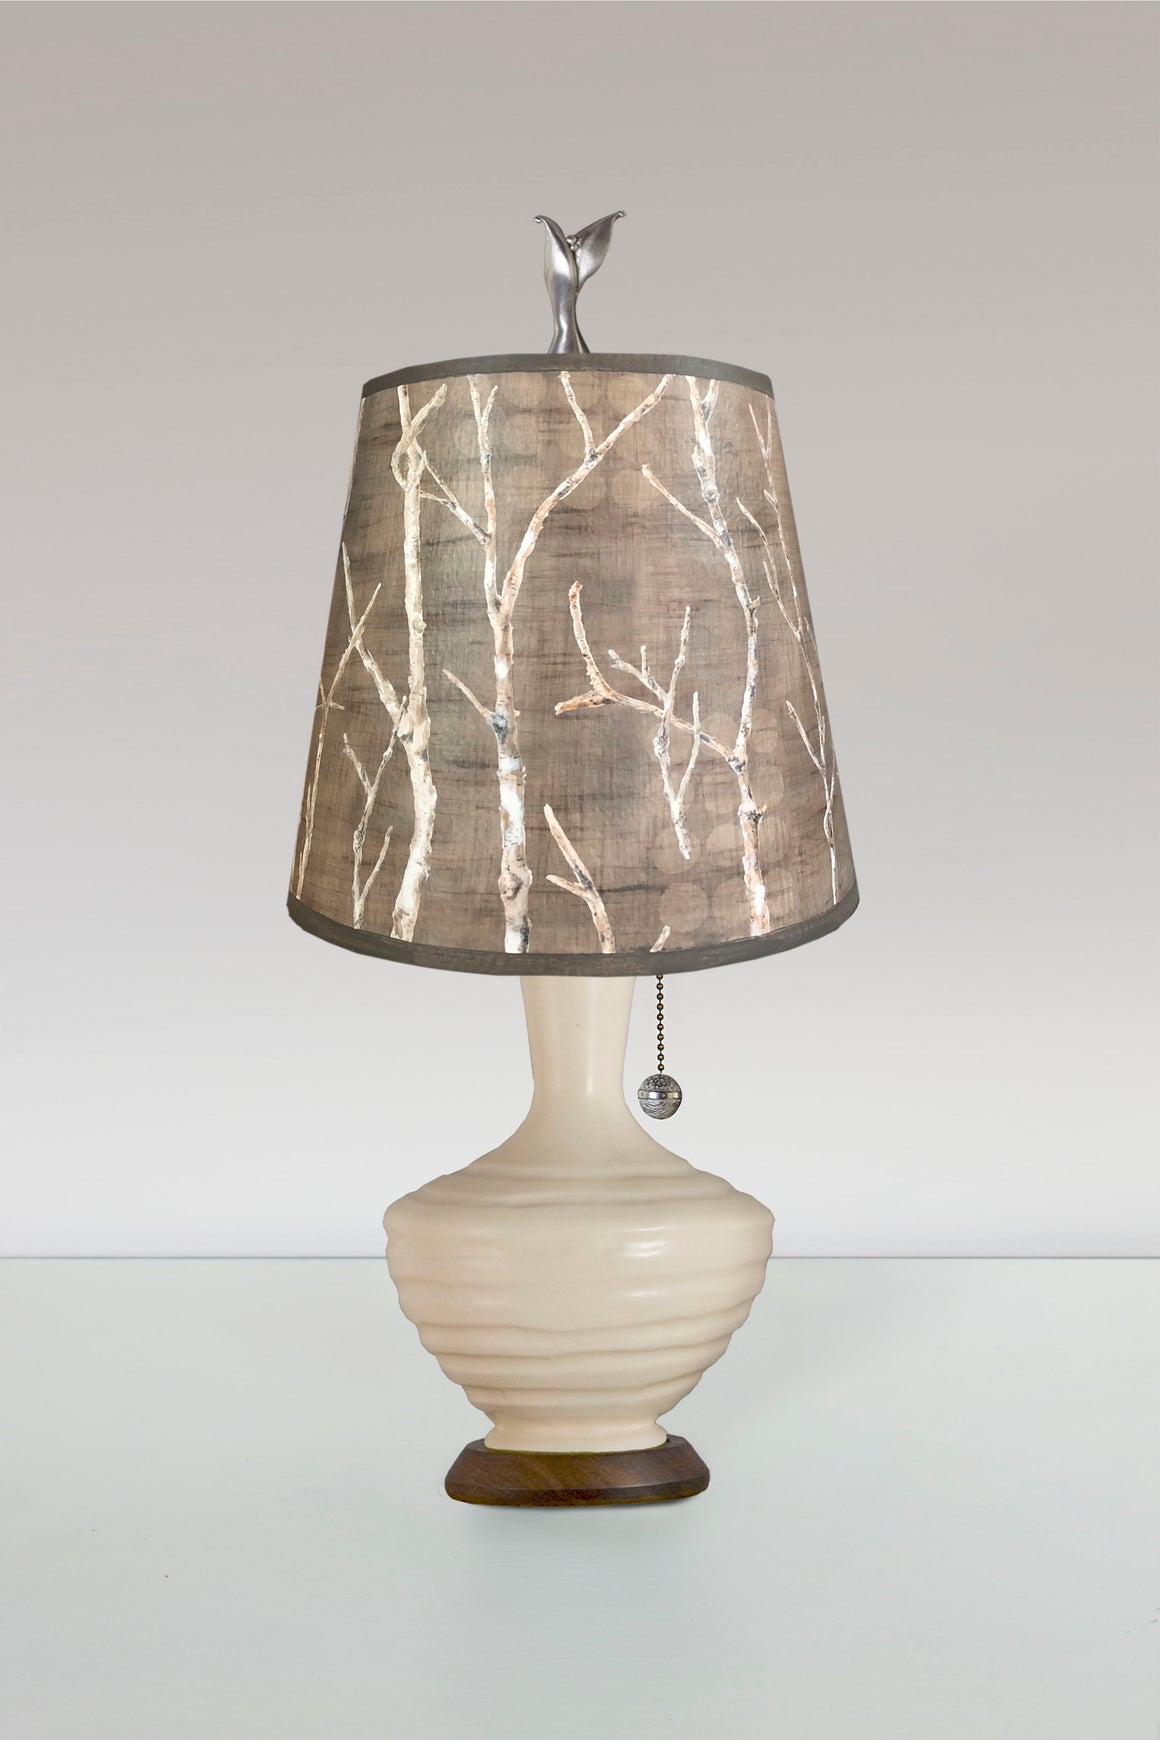 Ivory Ceramic Table Lamp with Small Drum Shade in Twigs